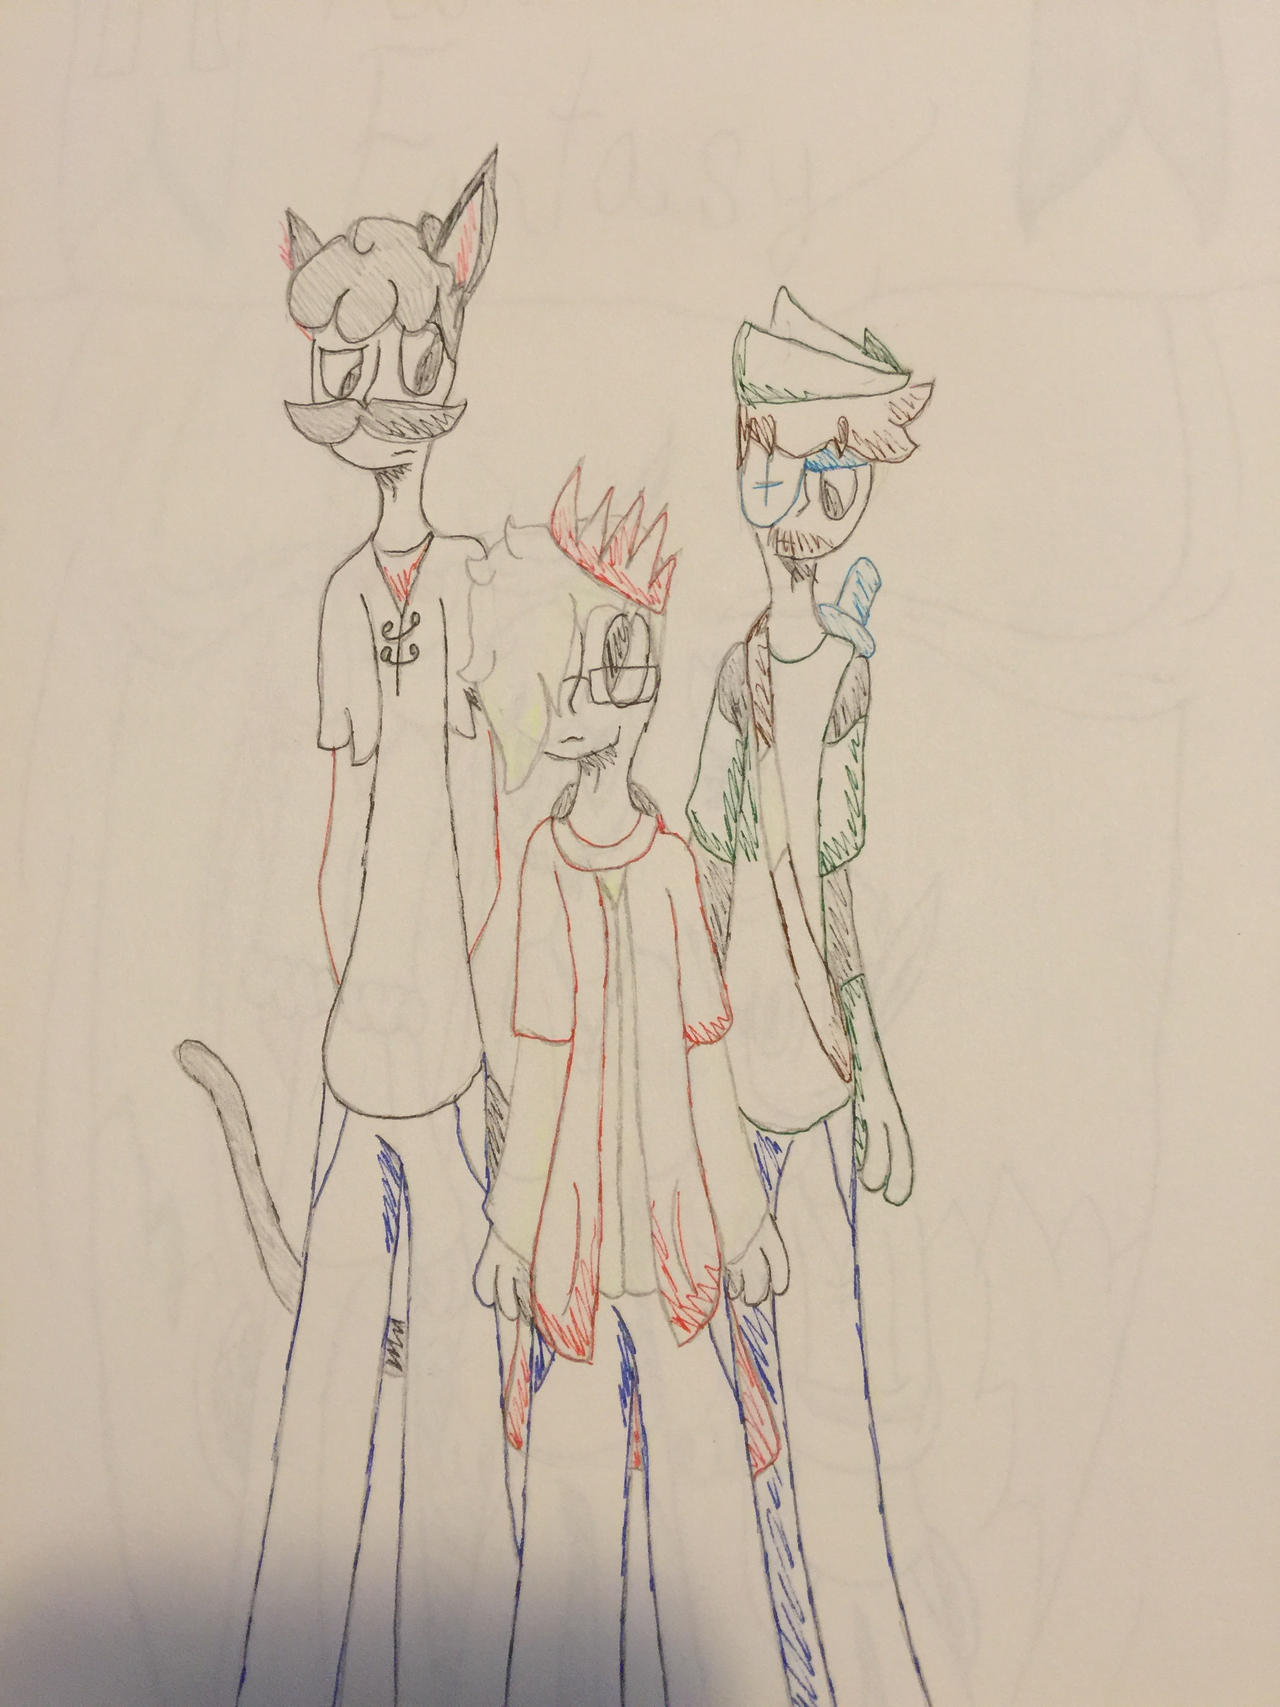 Mumbo, Grian, and Iskall by themightywolftiger on DeviantArt